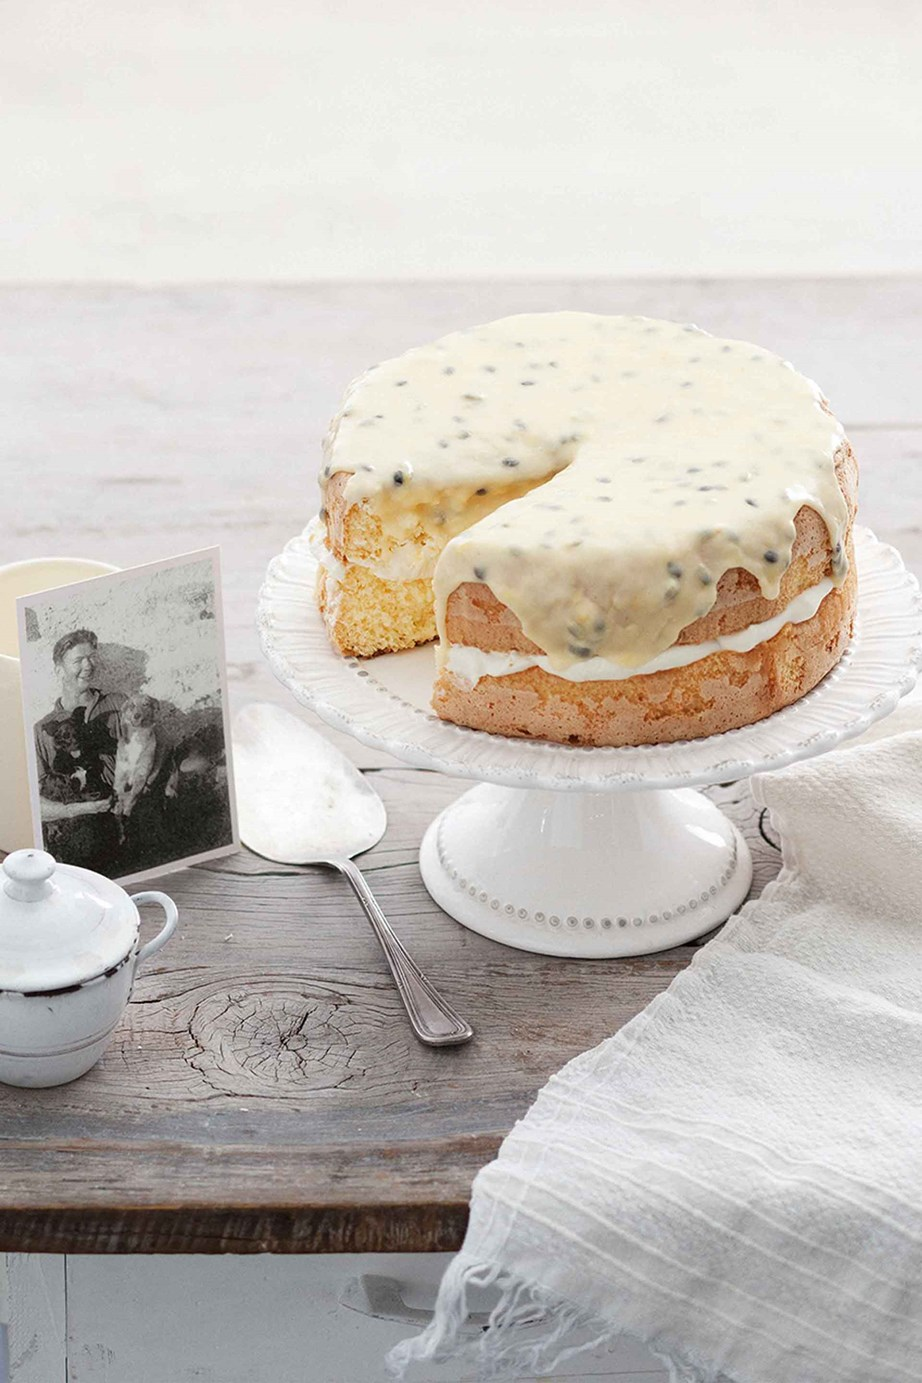 "[Recipe: Bill Bevan's passionfruit sponge cake >](https://www.homestolove.com.au/heirloom-recipe-bill-bevans-passionfruit-sponge-cake-10548|target=""_blank"")"